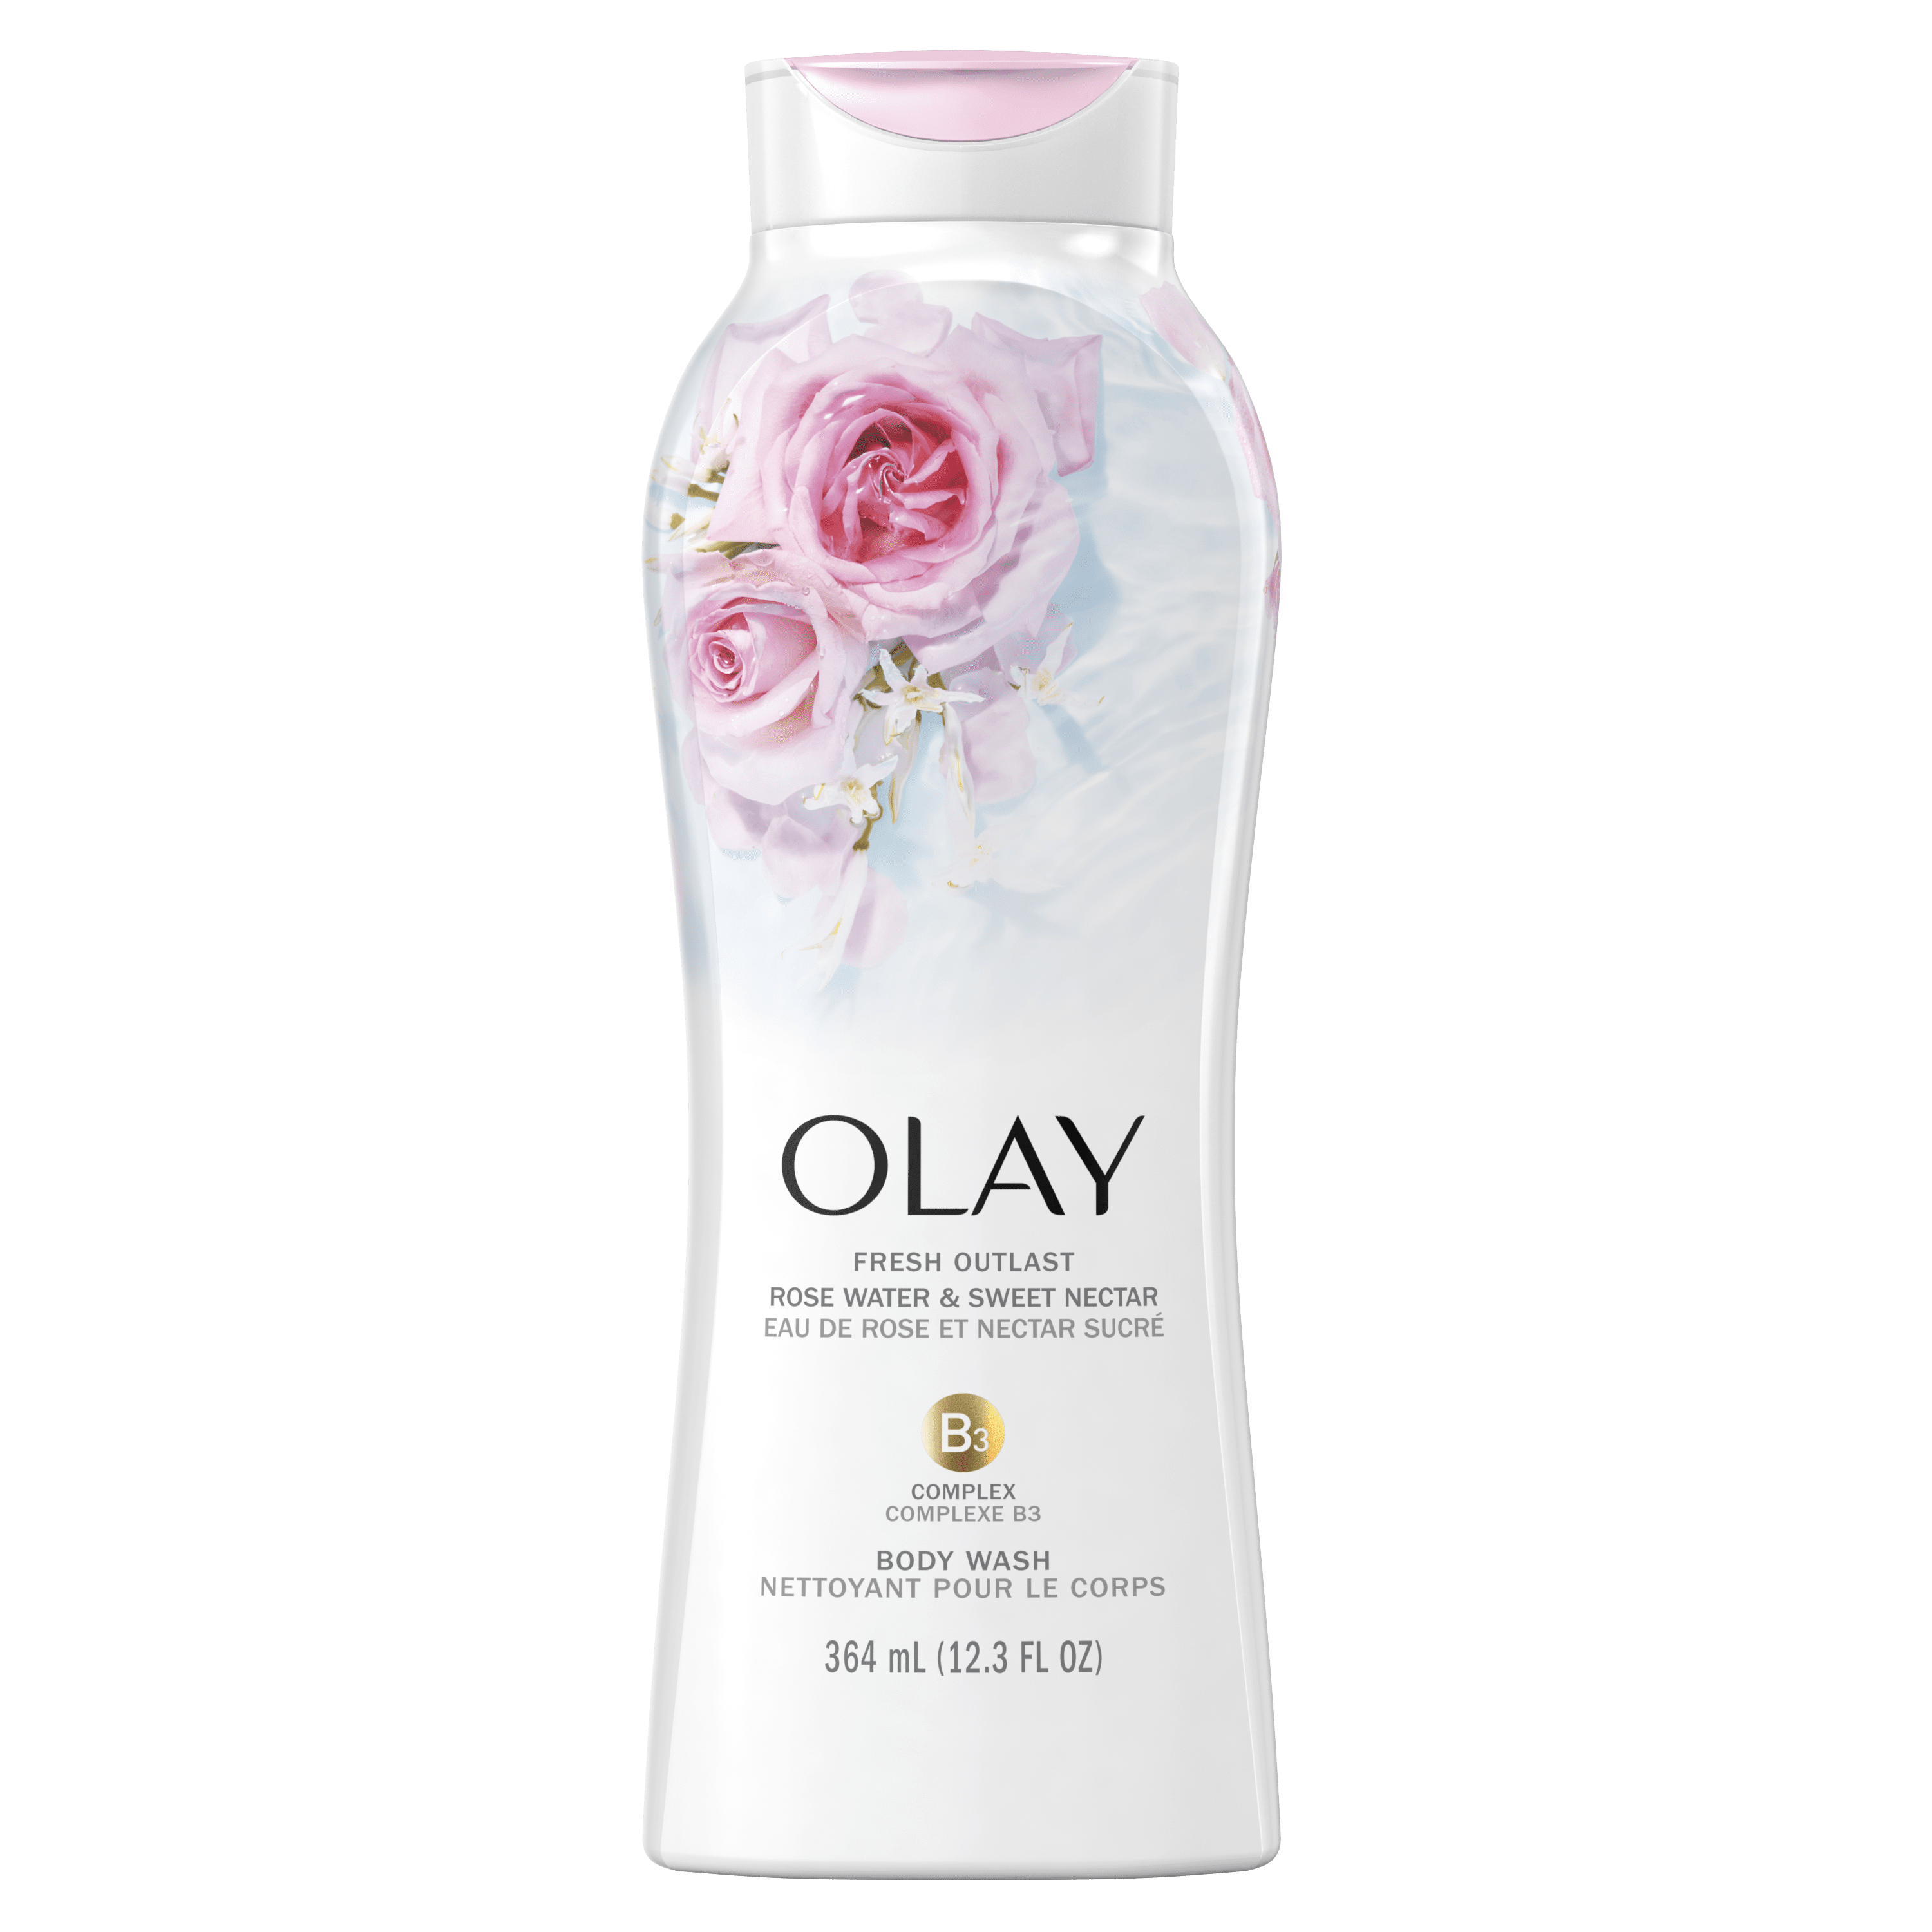 Rose Water and Sweet Nectar Fresh Outlast Body Wash